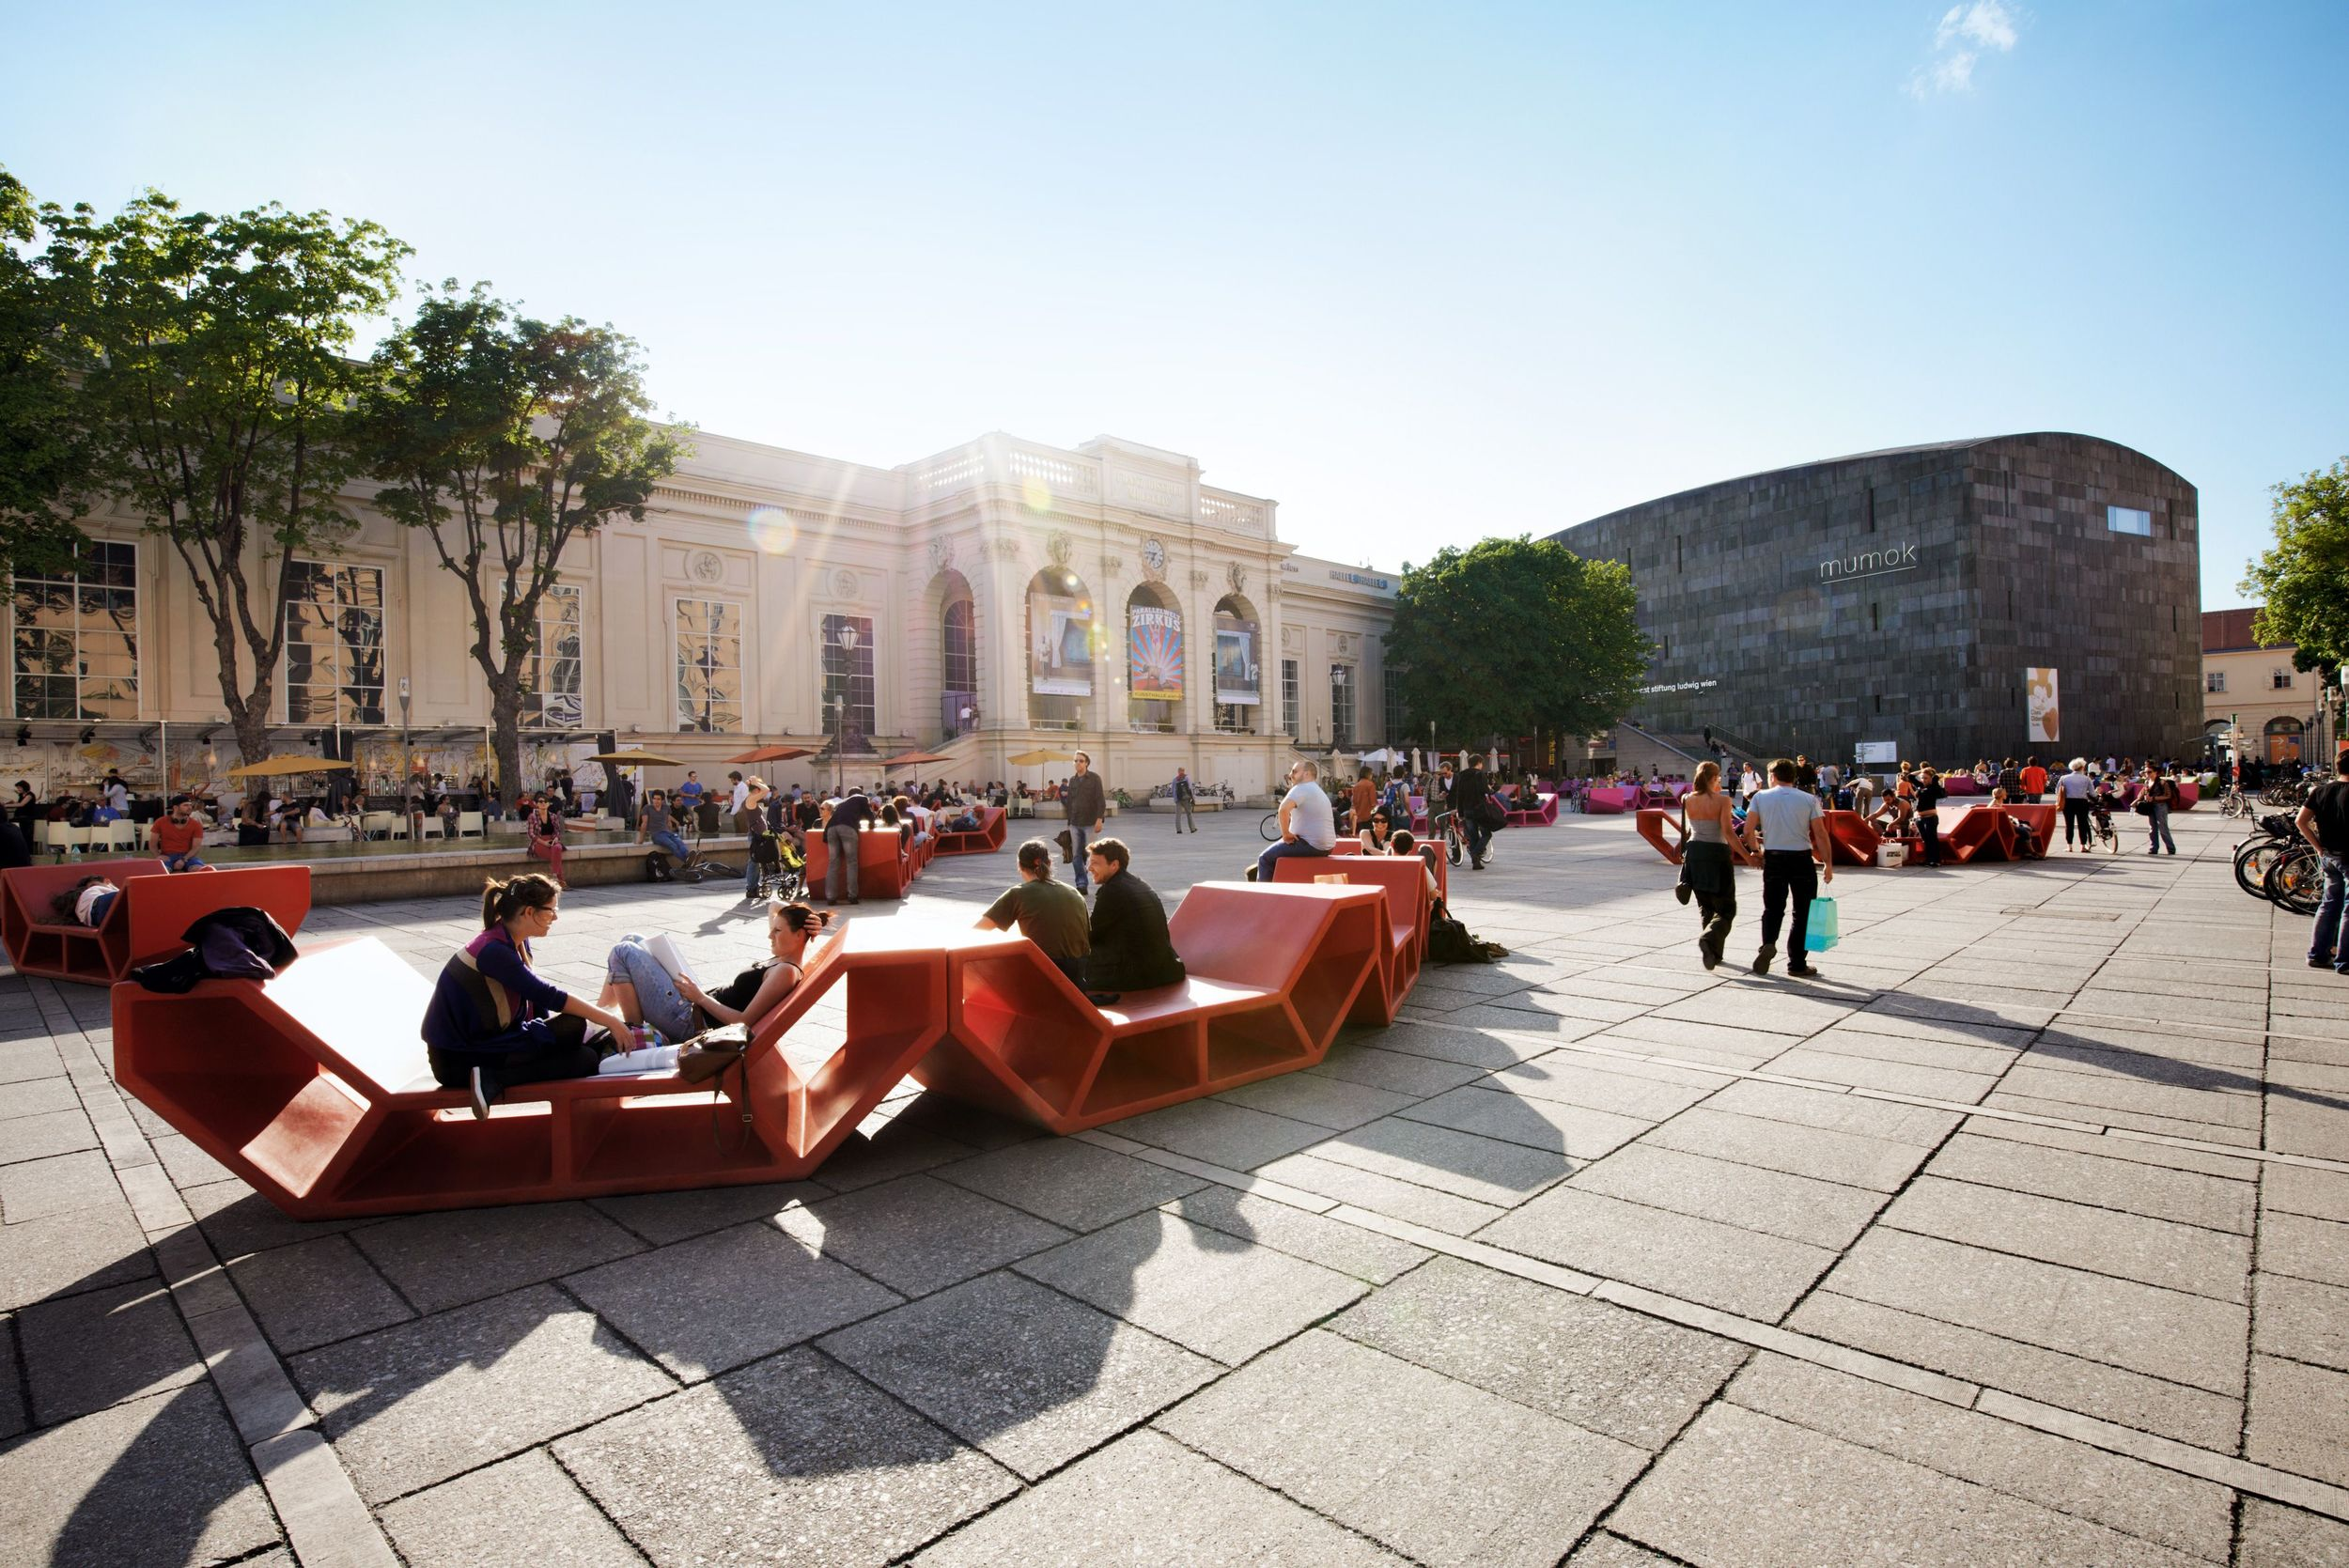 PEOPLE ENJOYING A SUN0FILLED AFTERNOON AT MUSEUMSQUARTIER (COURTESY OF MQW.AT)